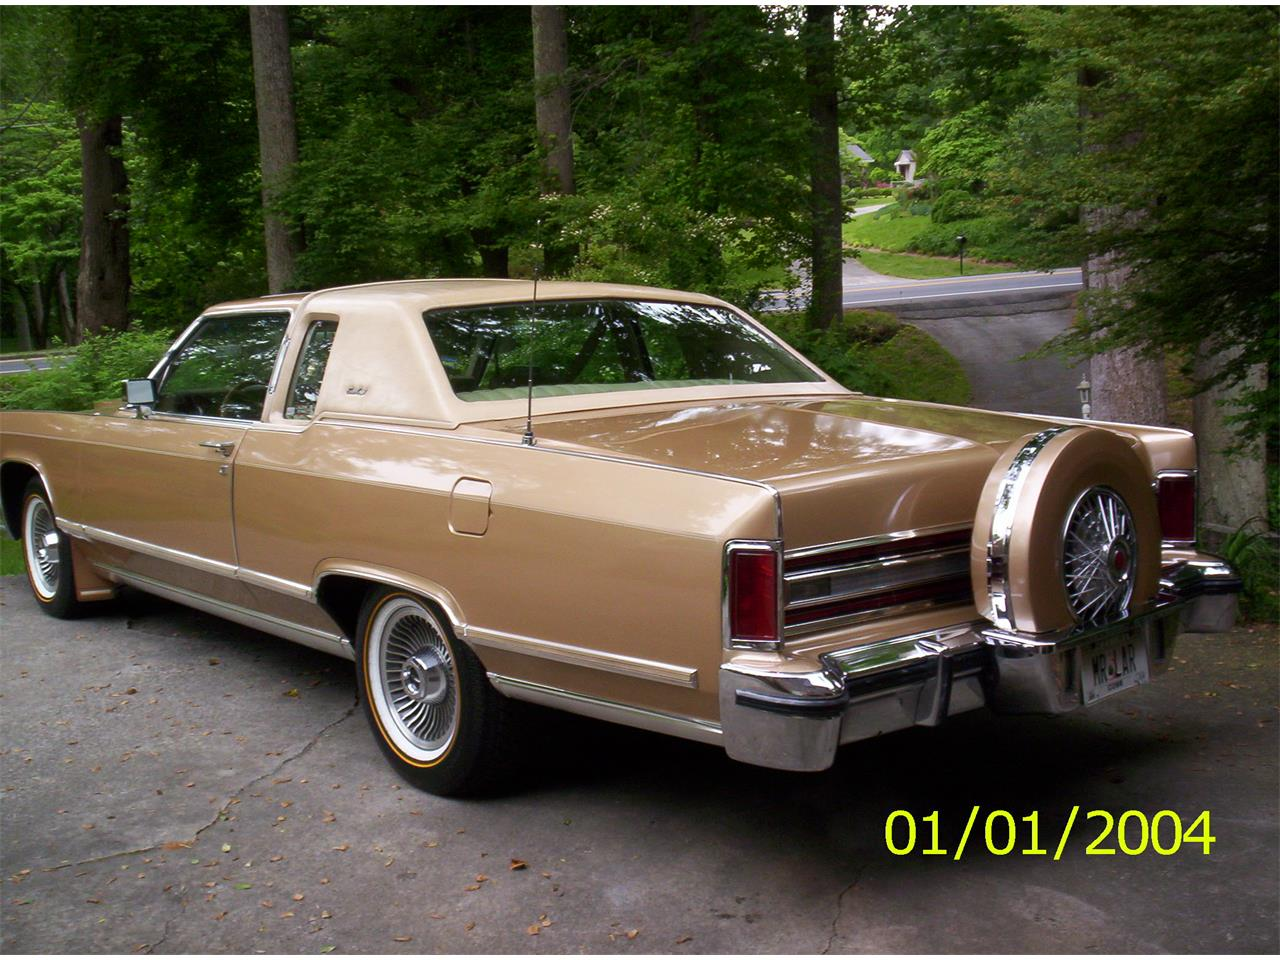 Large Picture of '79 Town Car located in Cobb County Georgia Offered by a Private Seller - C6IM